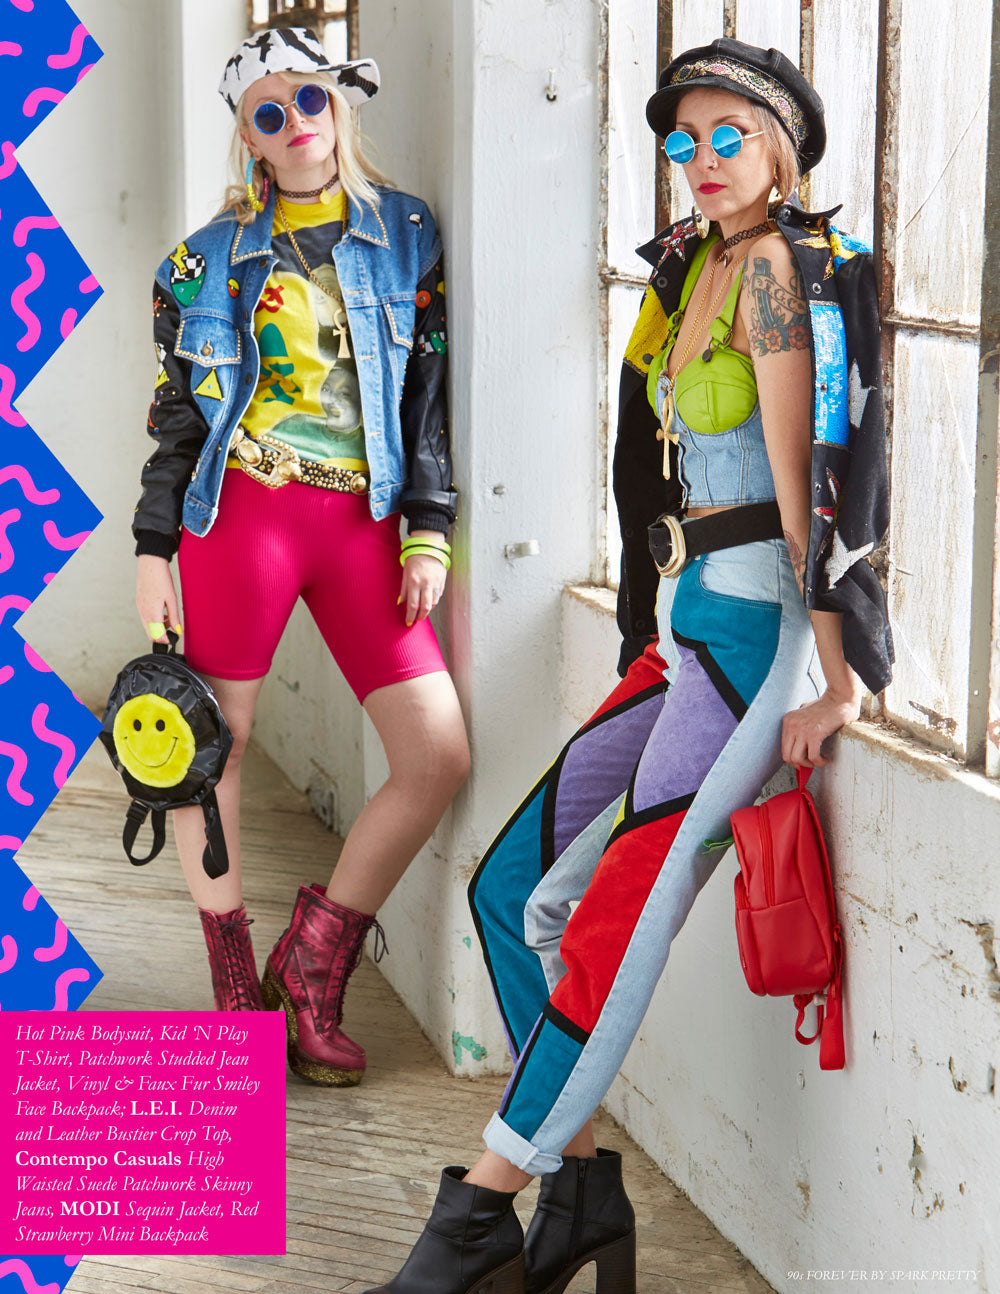 90s Forever Retro Vintage Fashion Apparel Lookbook - Hot Pink Bodysuit, Kid 'N Play T-Shirt, Patchwork Studded Jean Jacket, Vinyl & Faux Fur Smiley Face Backpack; L.E.I. Denim and Leather Bustier Crop Top, Contempo Casuals High Waisted Suede Patchwork Skinny Jeans, MODI Sequin Jacket, Red Strawberry Mini Backpack